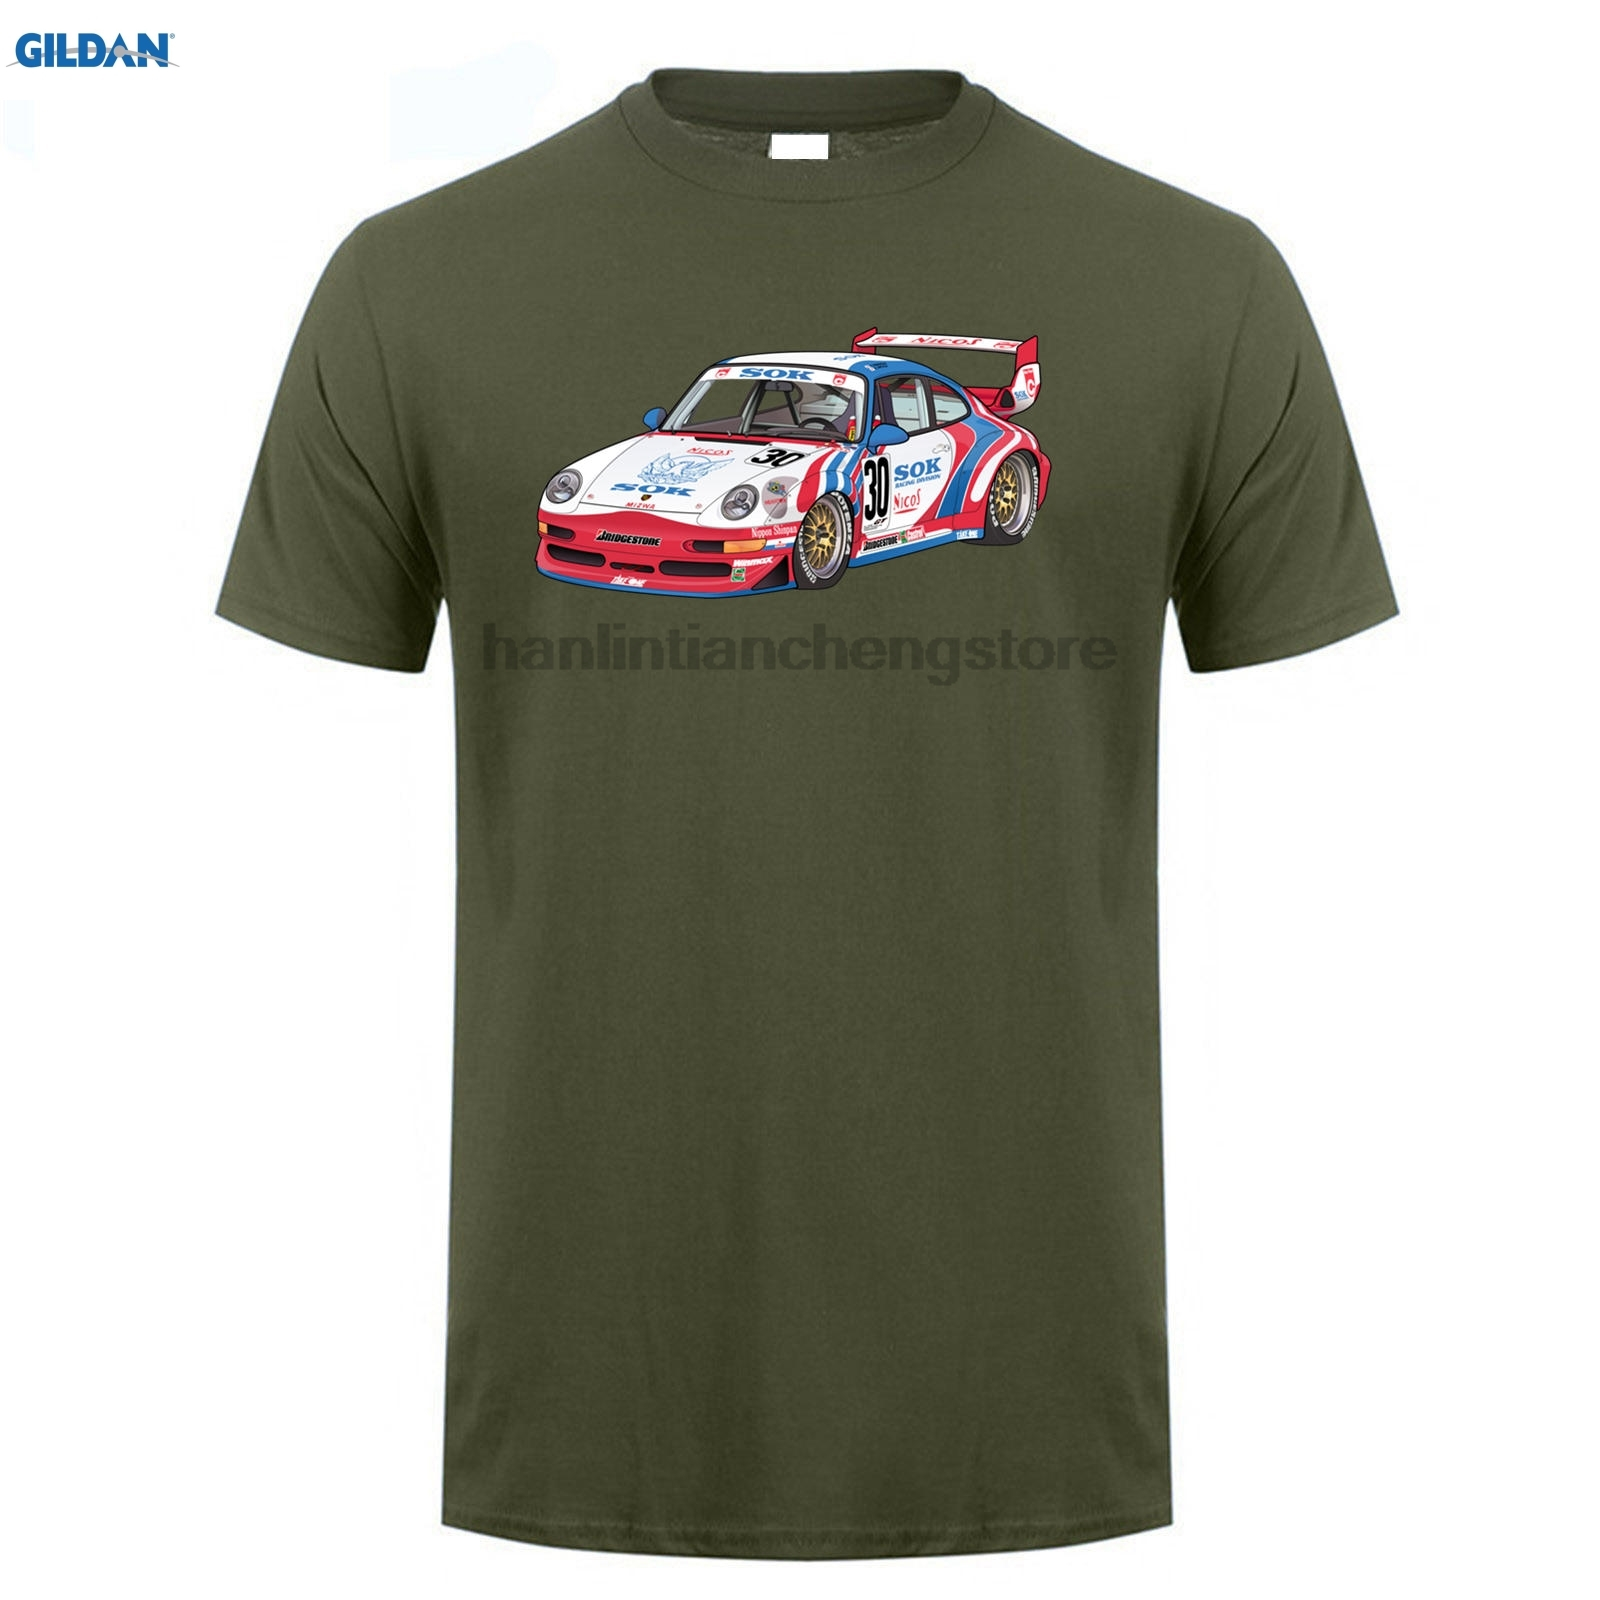 GILDAN 2018 SOK T-shirt number 30 T-shirt mens fashion short-top t shirt